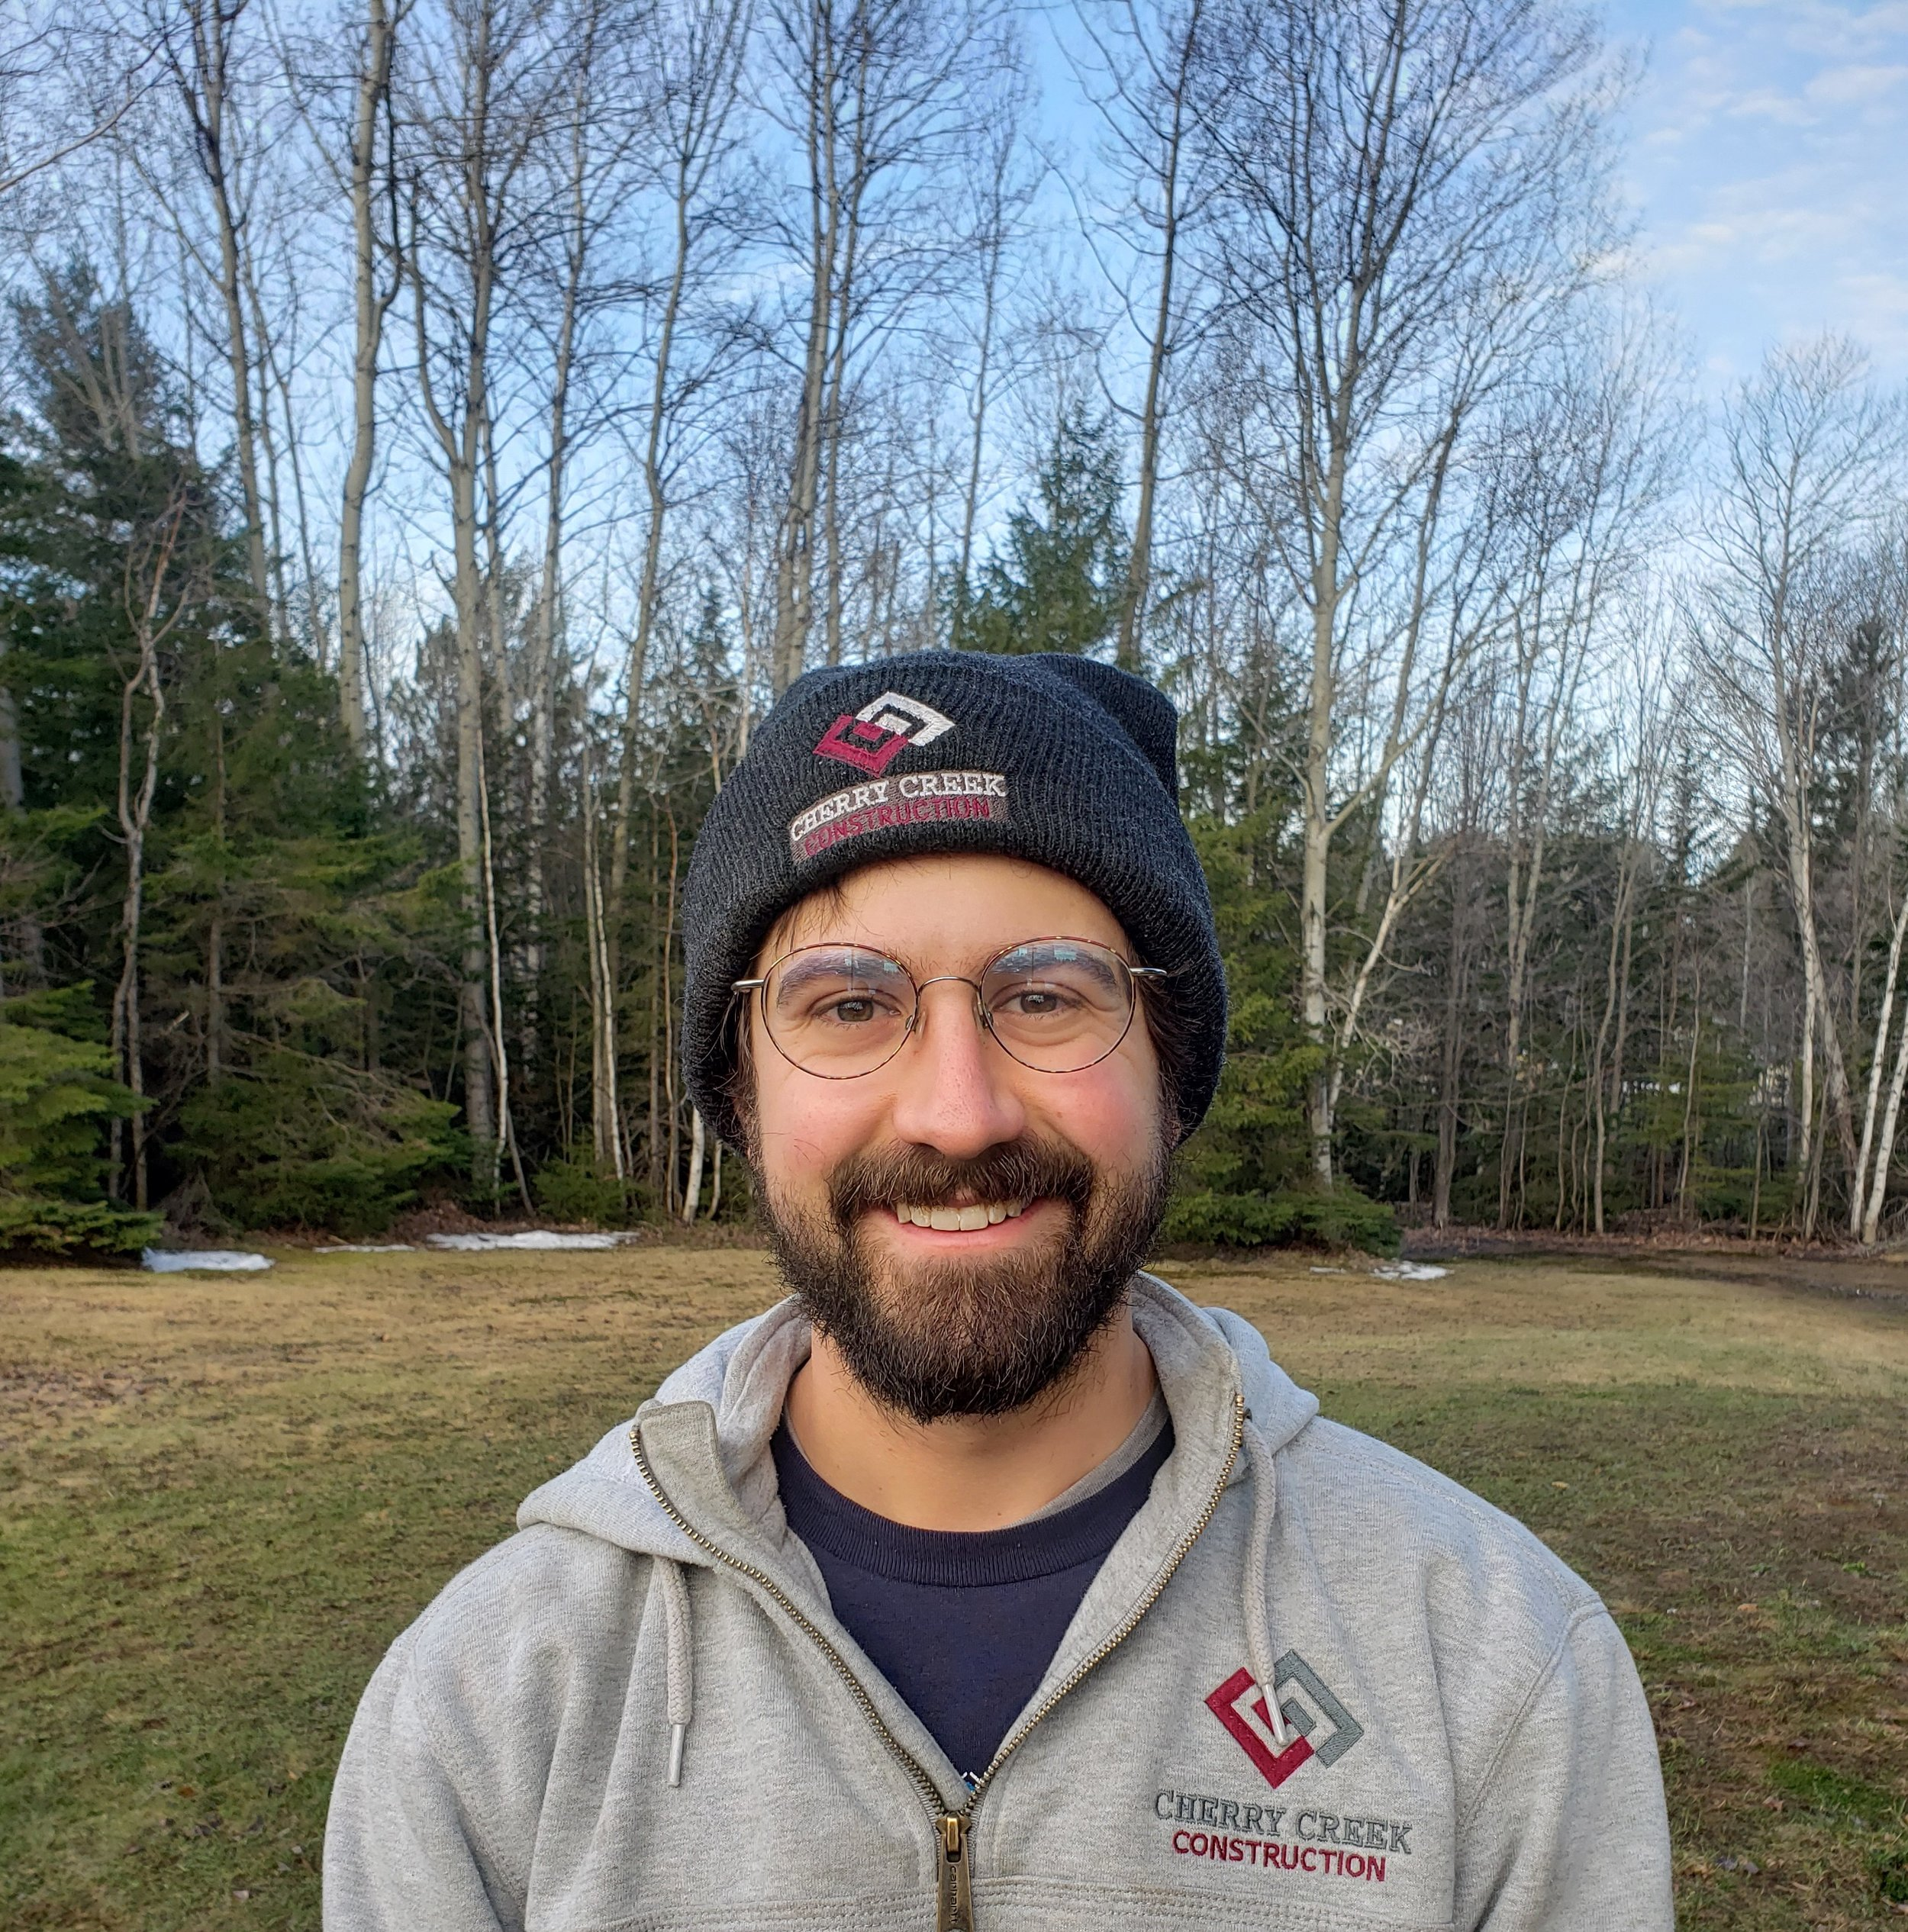 Isaac Behrens - Isaac, carpenter, has lived in many states but now calls the U.P. home. When he's not working for CCC, he and his wife operate Cloverland Farms where they raise chickens, ducks, sheep, and pigs.